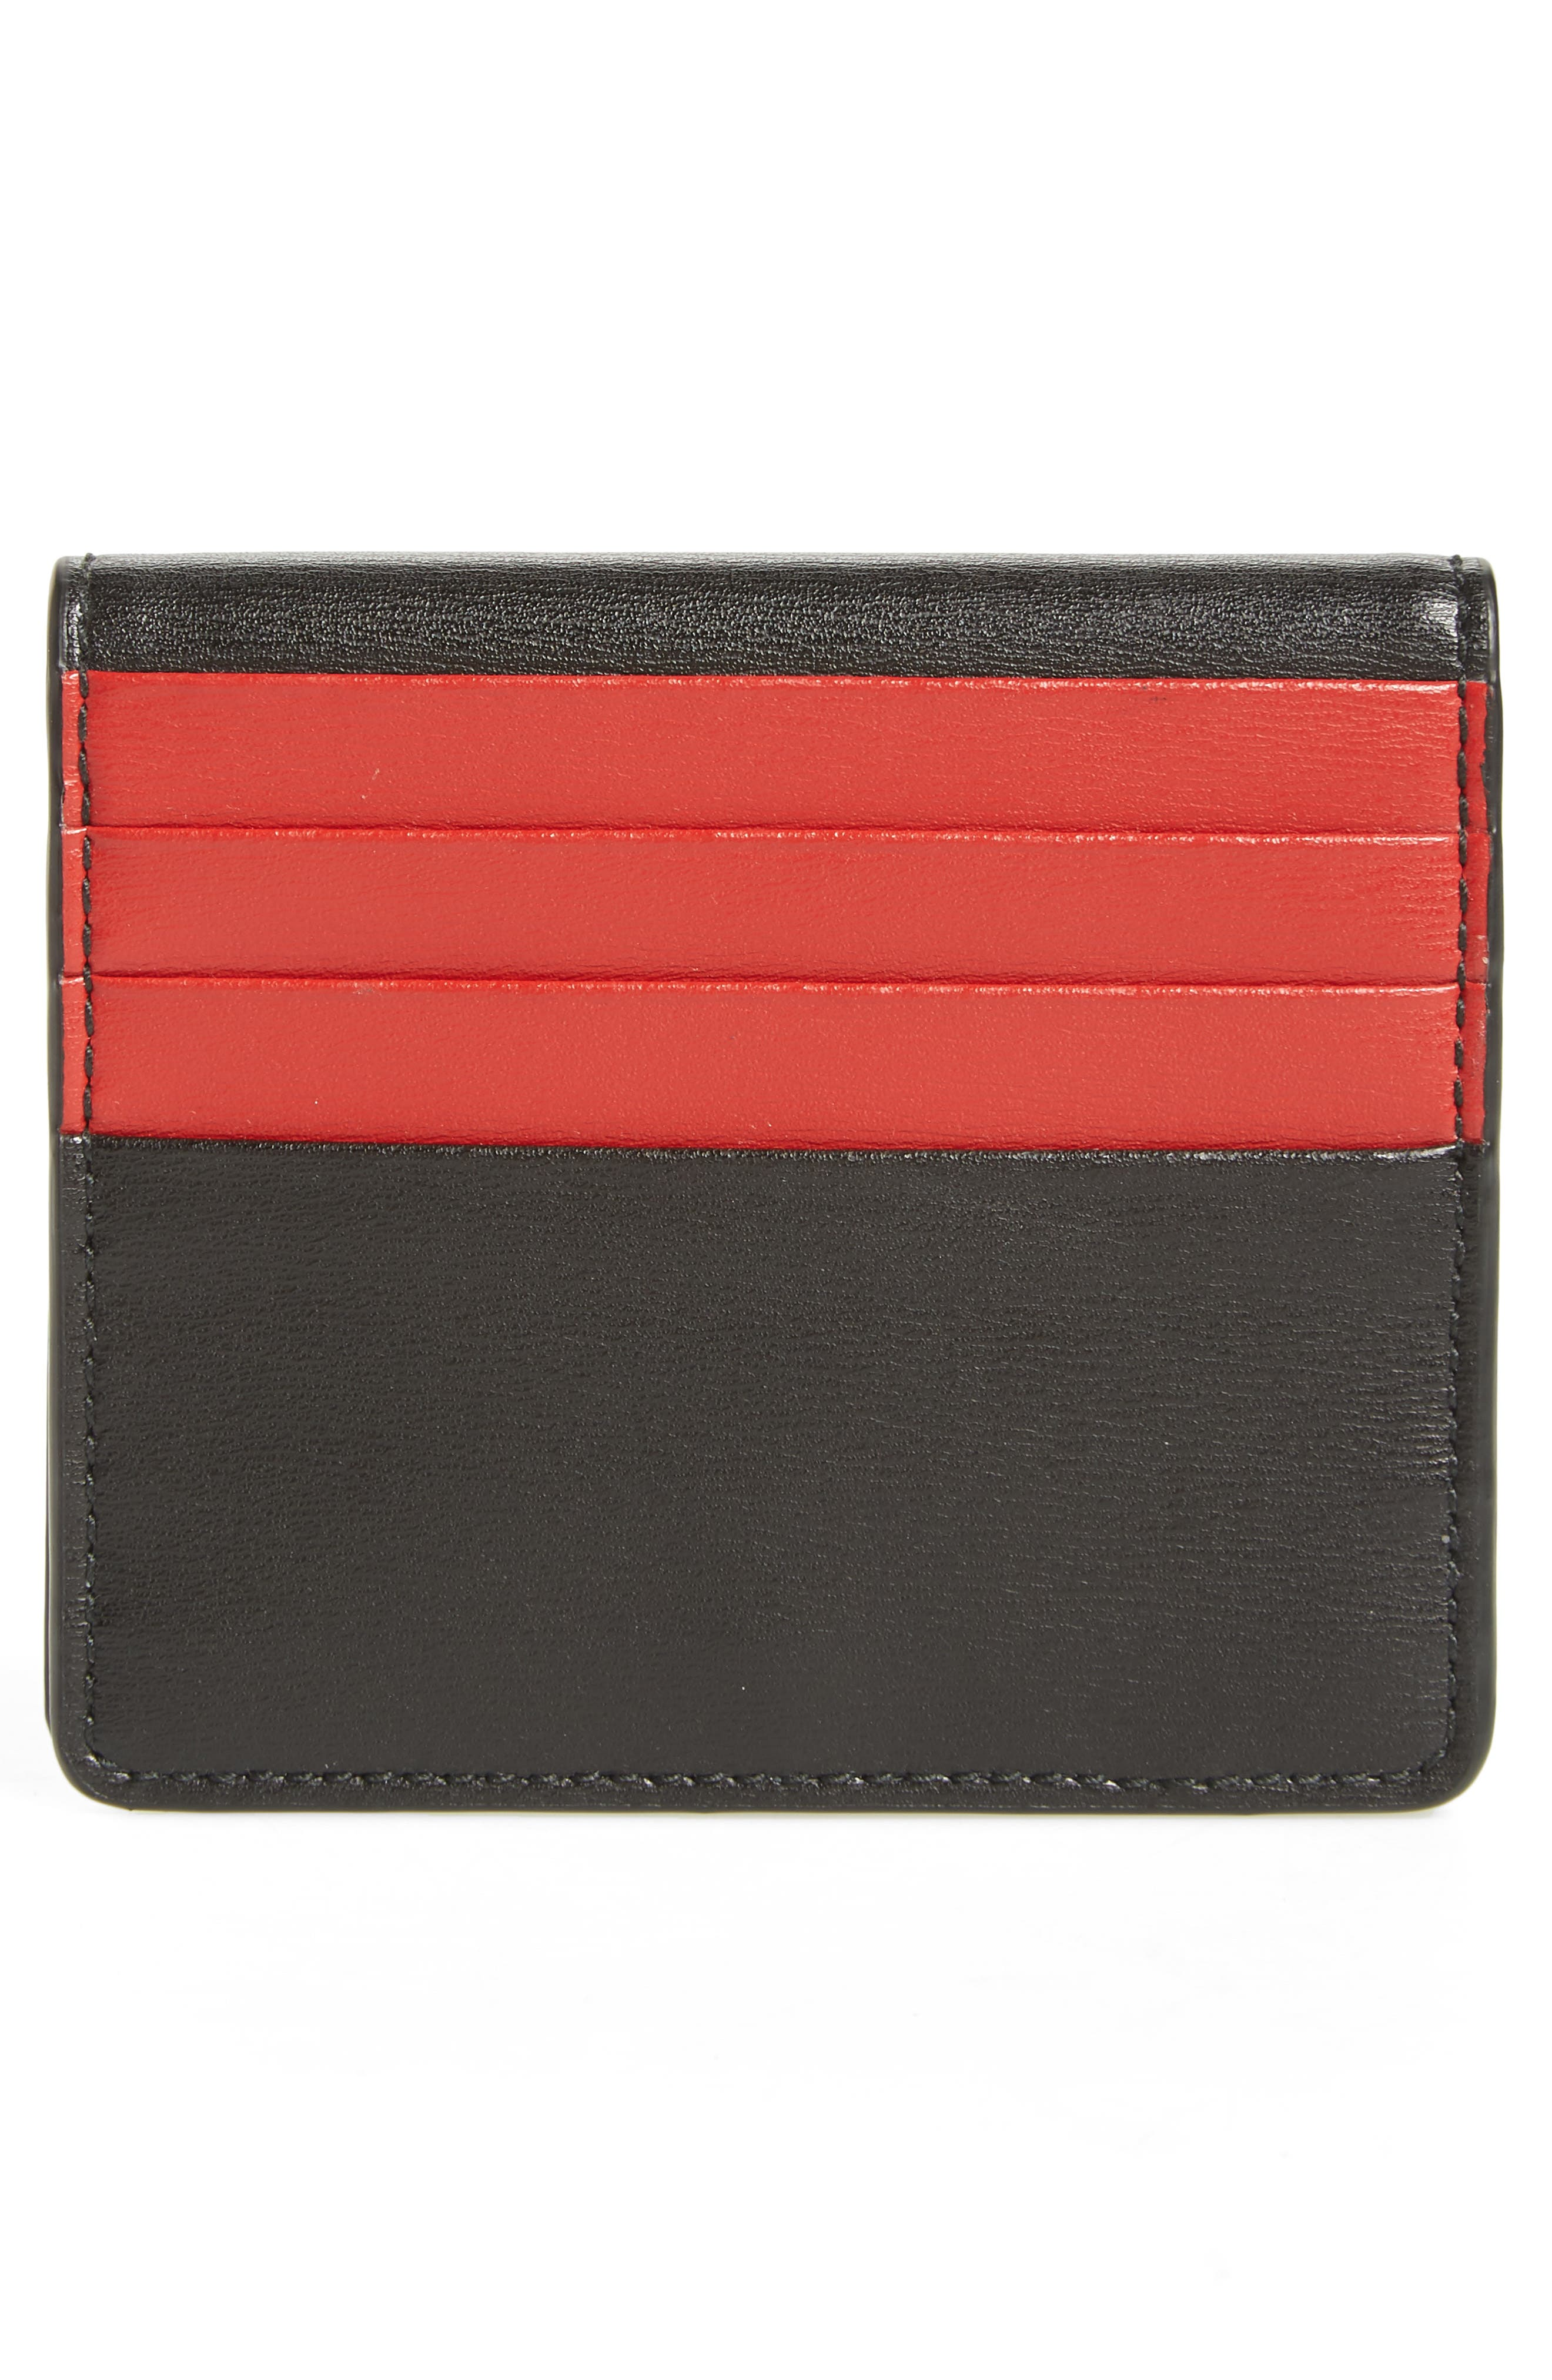 Quilted Gancio Leather French Wallet,                             Alternate thumbnail 4, color,                             NERO/ LIPSTICK